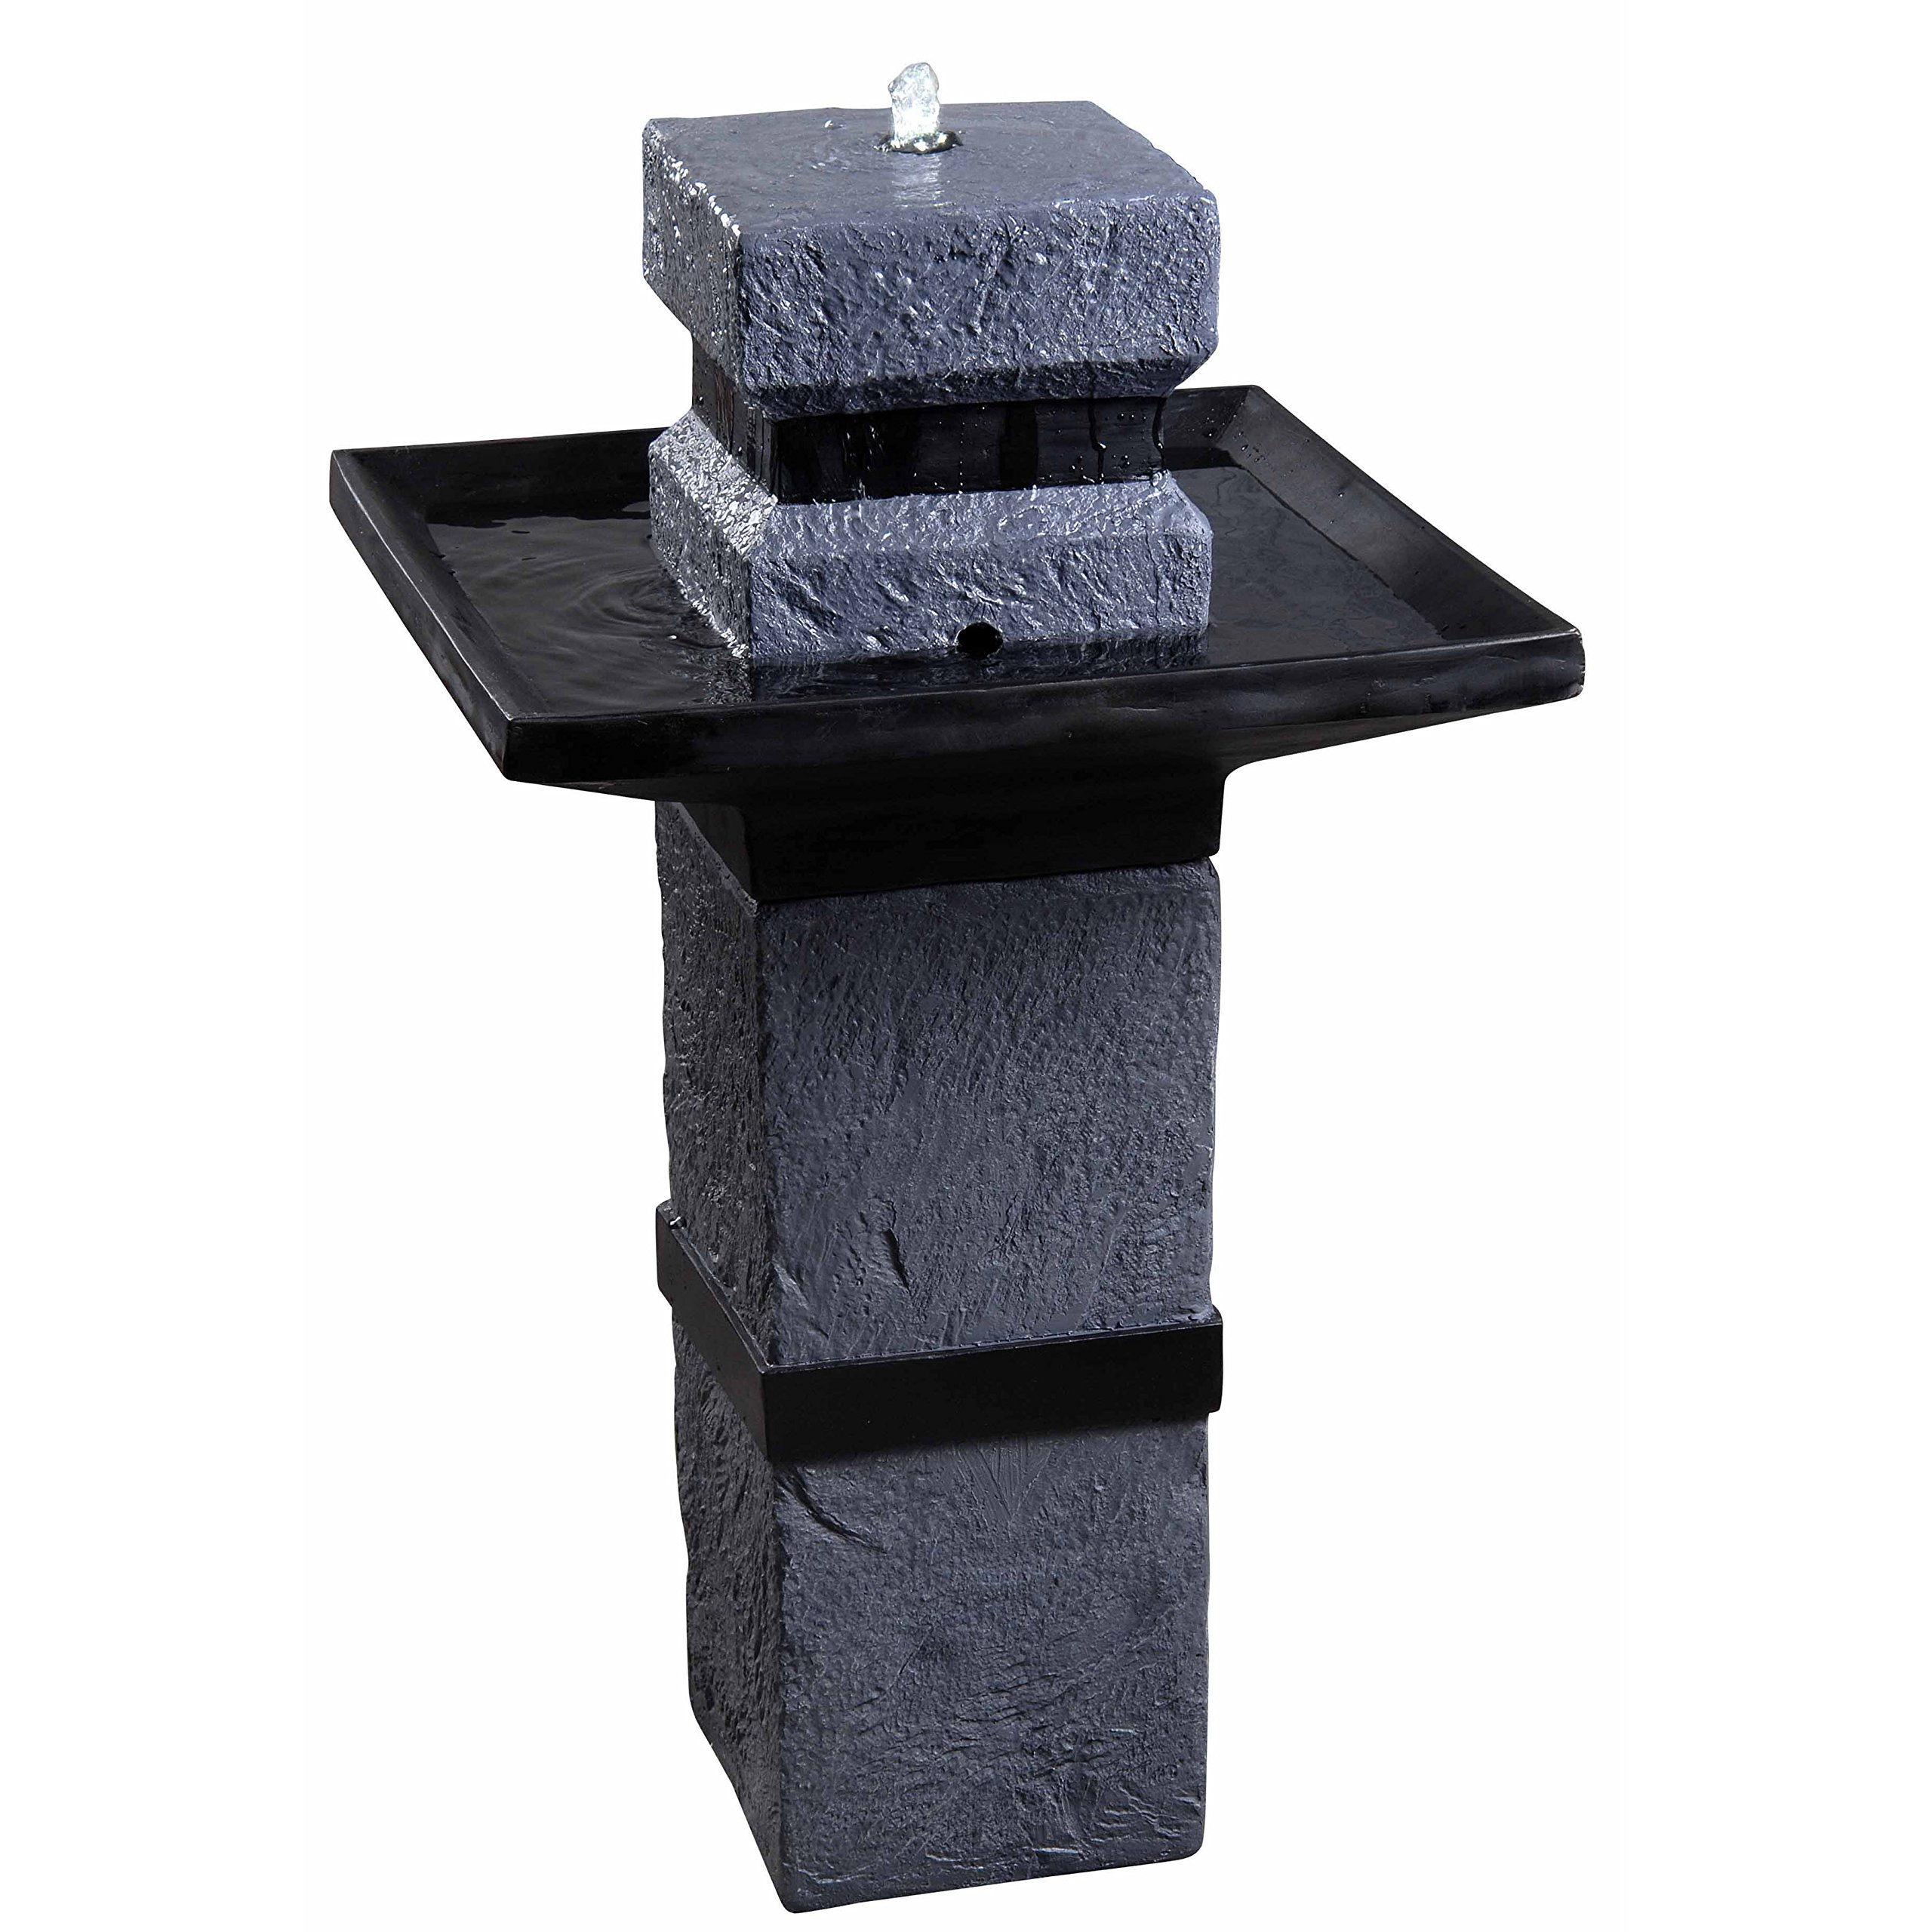 Kenroy Home 50028DST Monolith Outdoor Solar Fountain, Dark Stone Finish